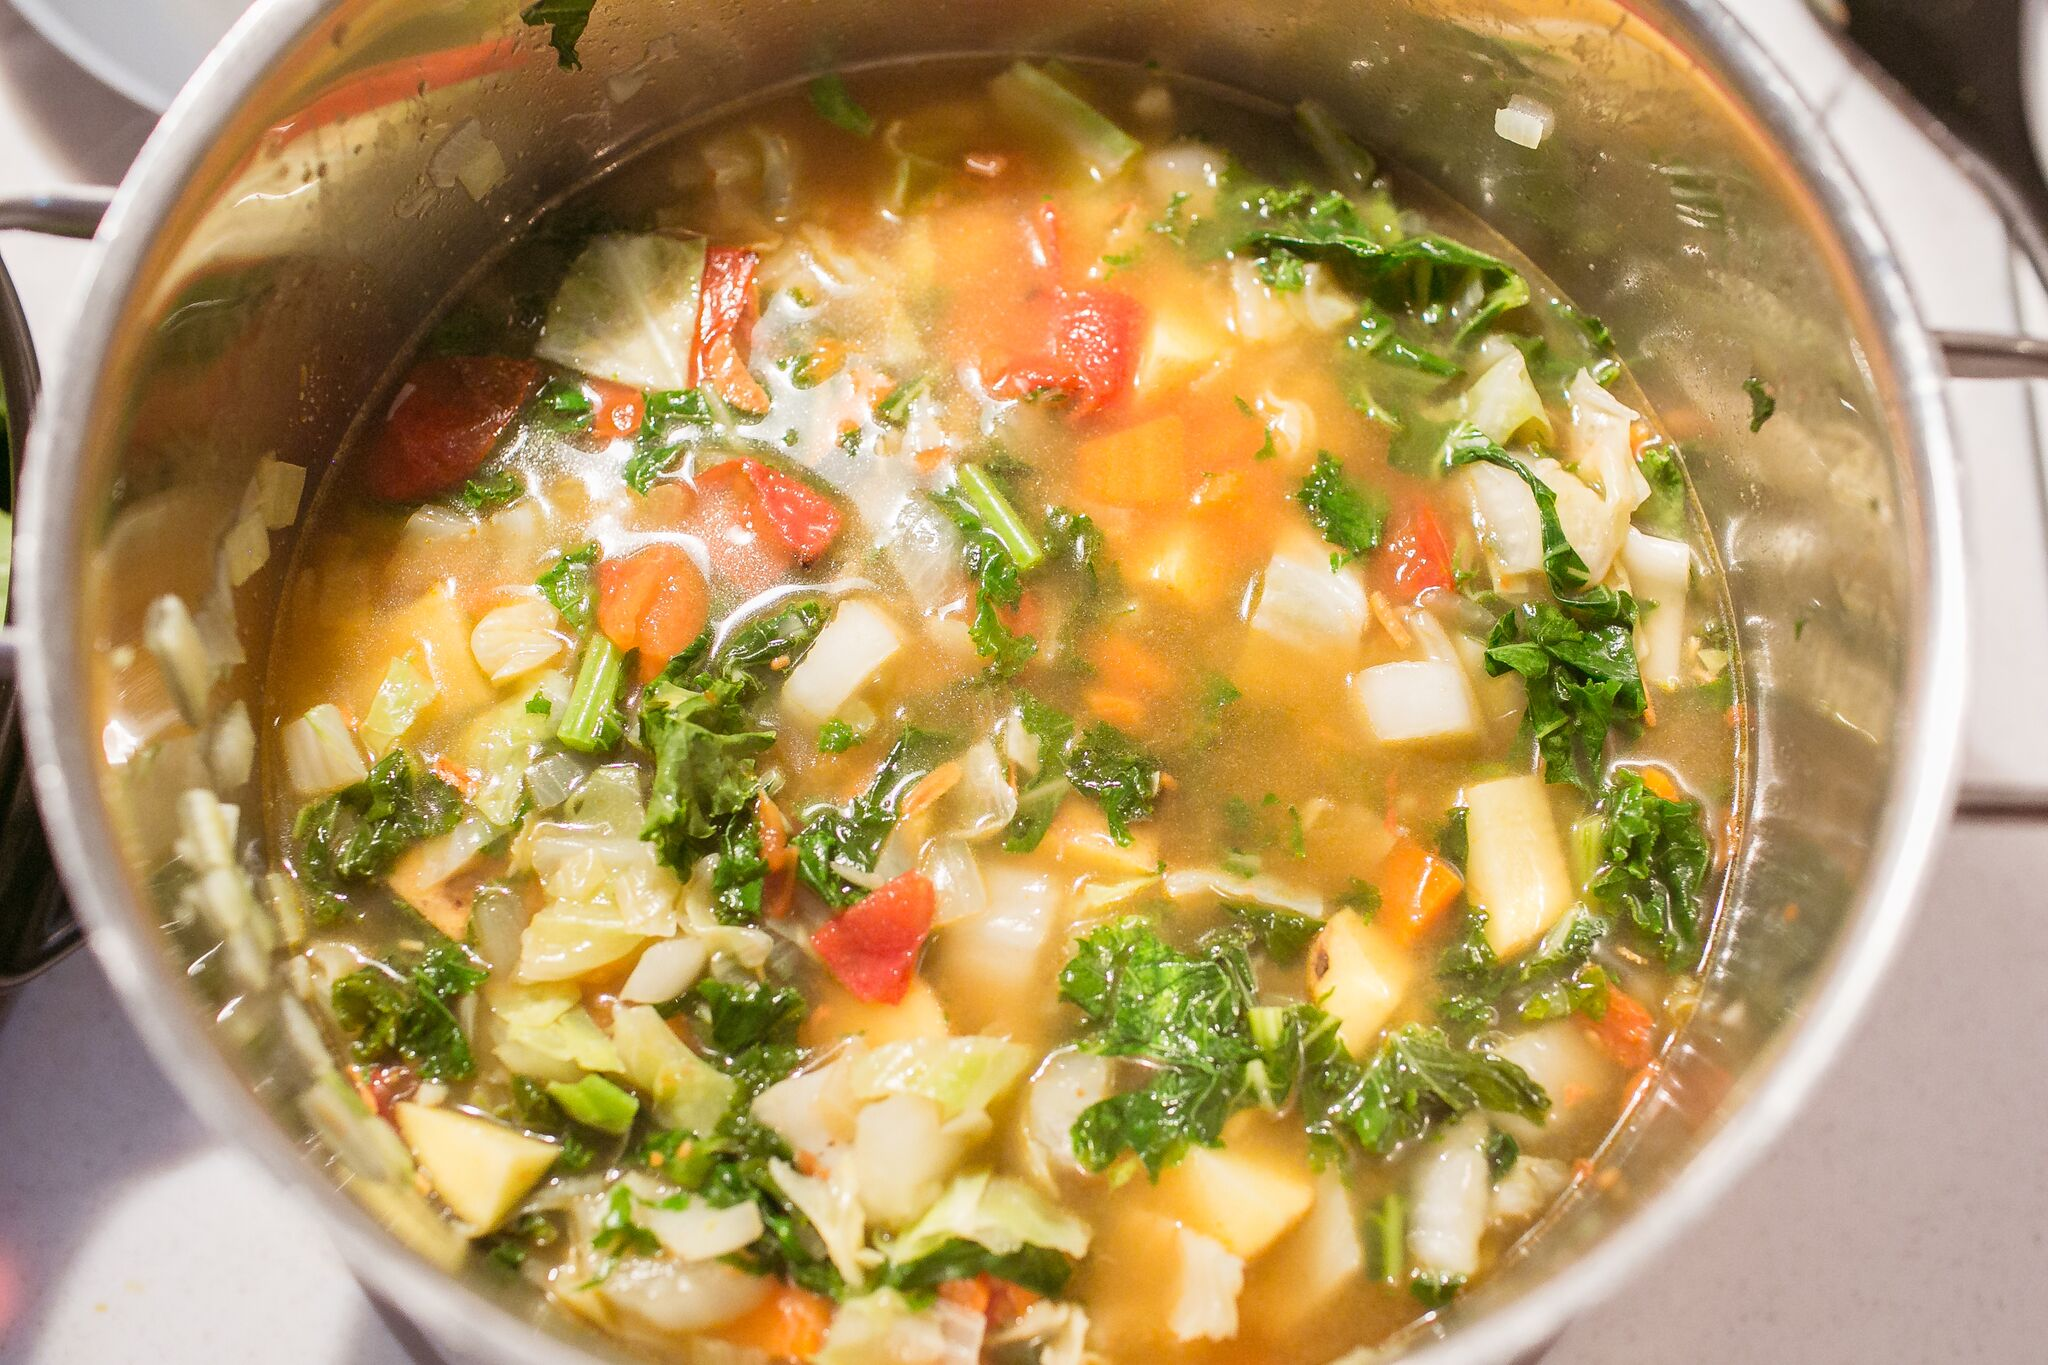 Add in broth and potatoes to soup pot and stir well.